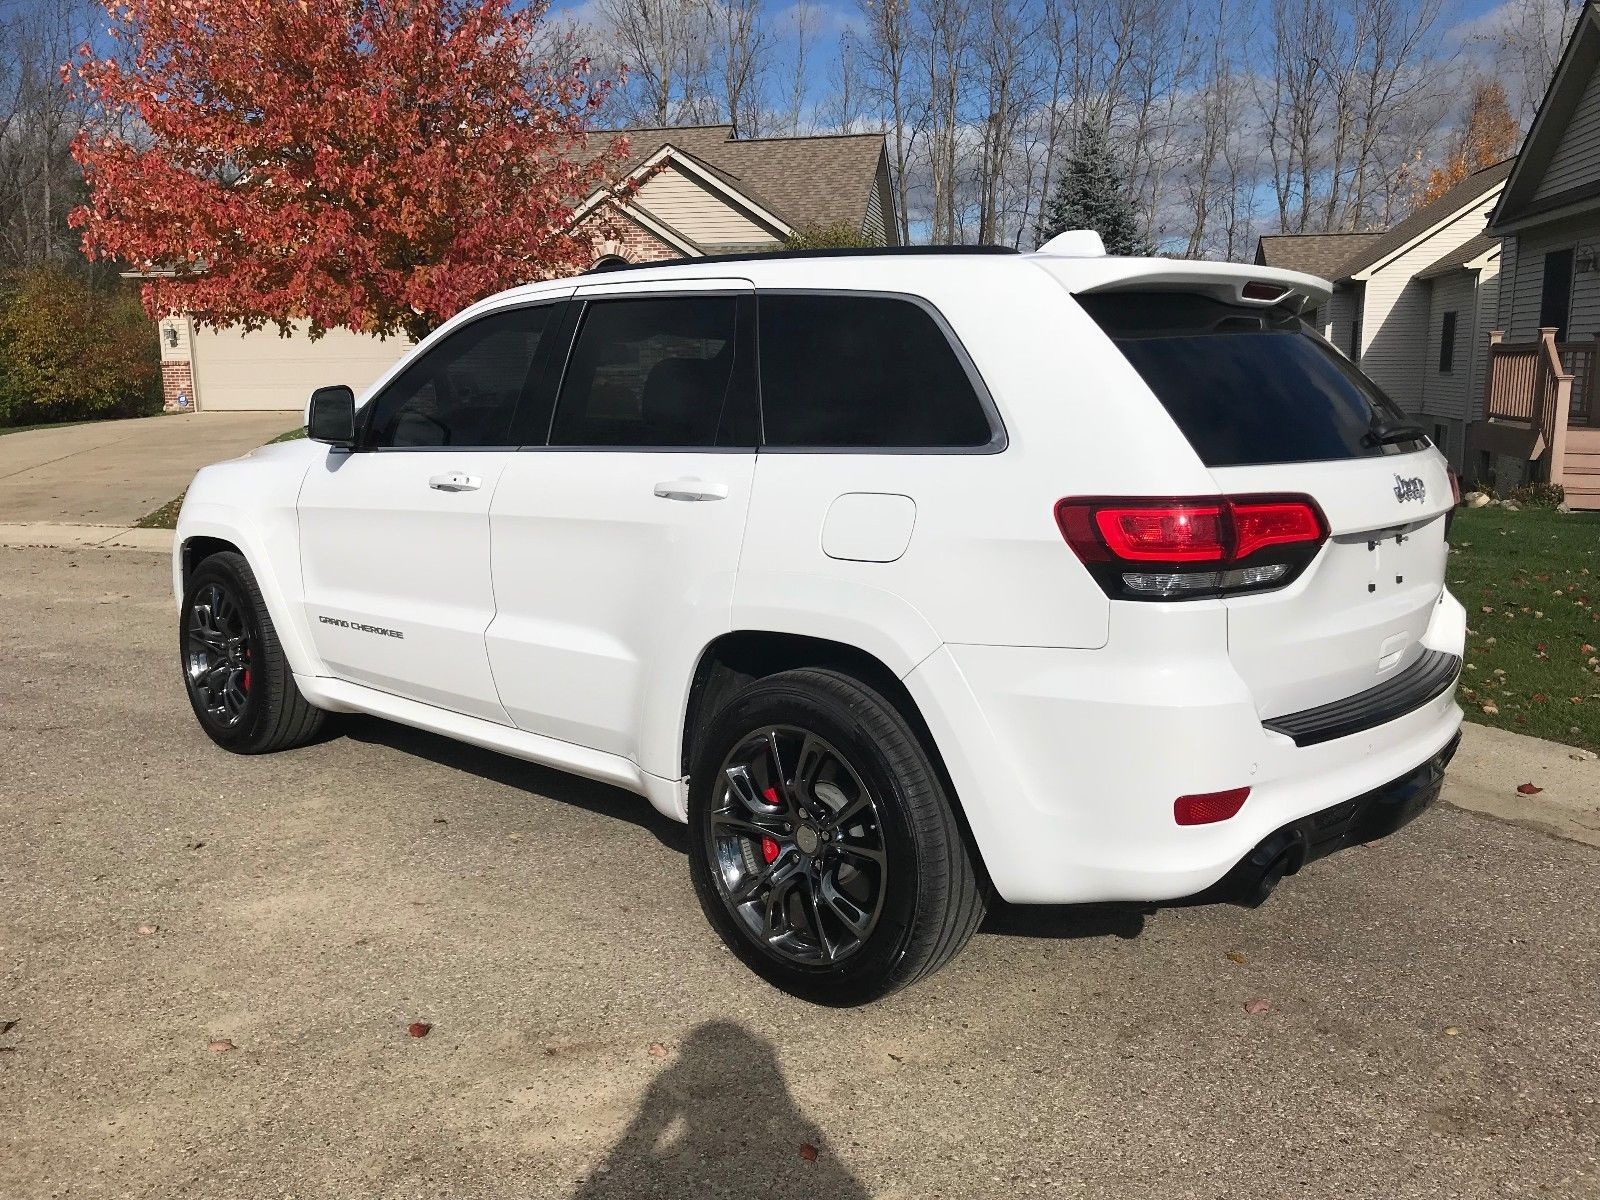 Grand Cherokee Srt8 For Sale >> Amazing 2015 Jeep Grand Cherokee SRT-8 2015 Jeep grand ...